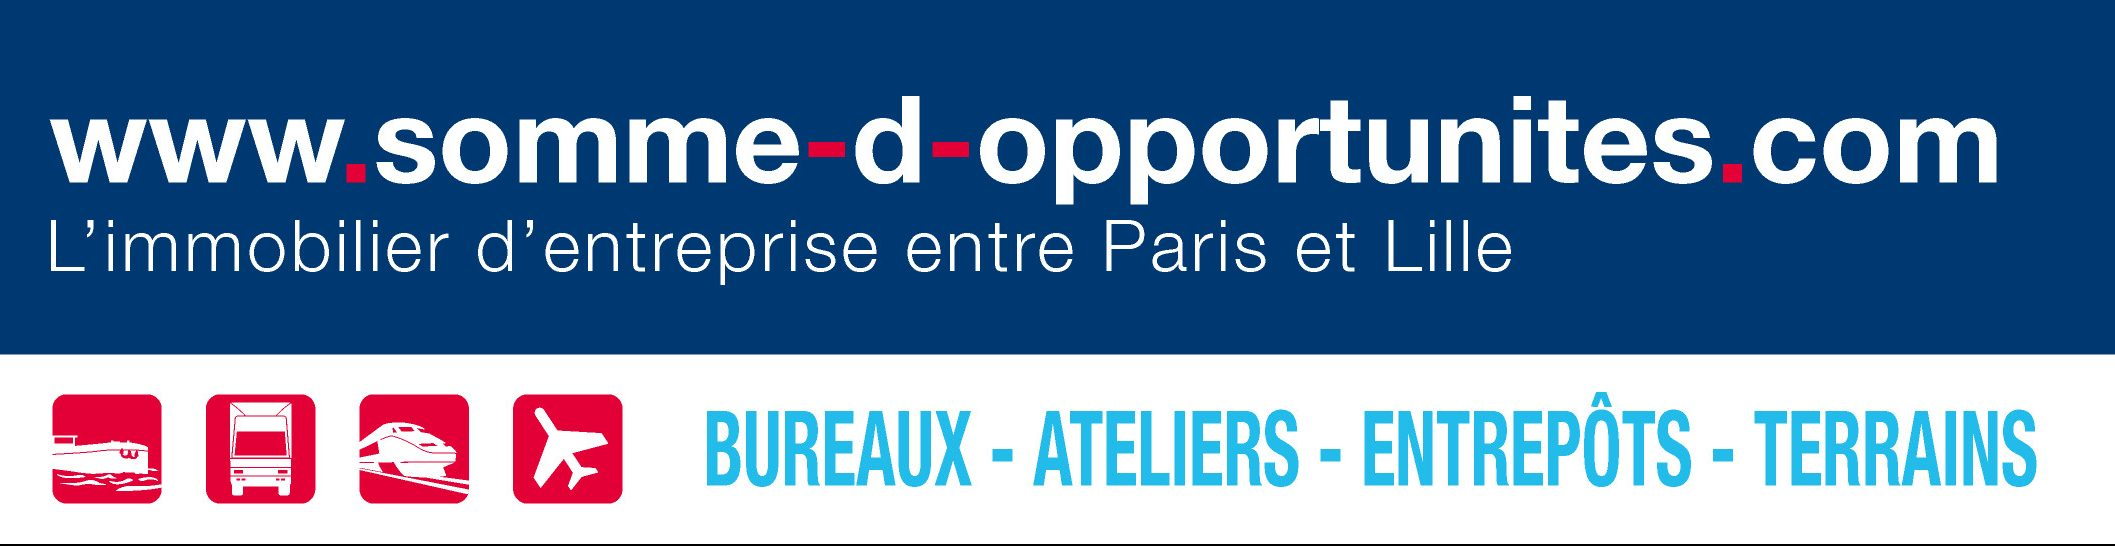 Somme immobilier entreprise